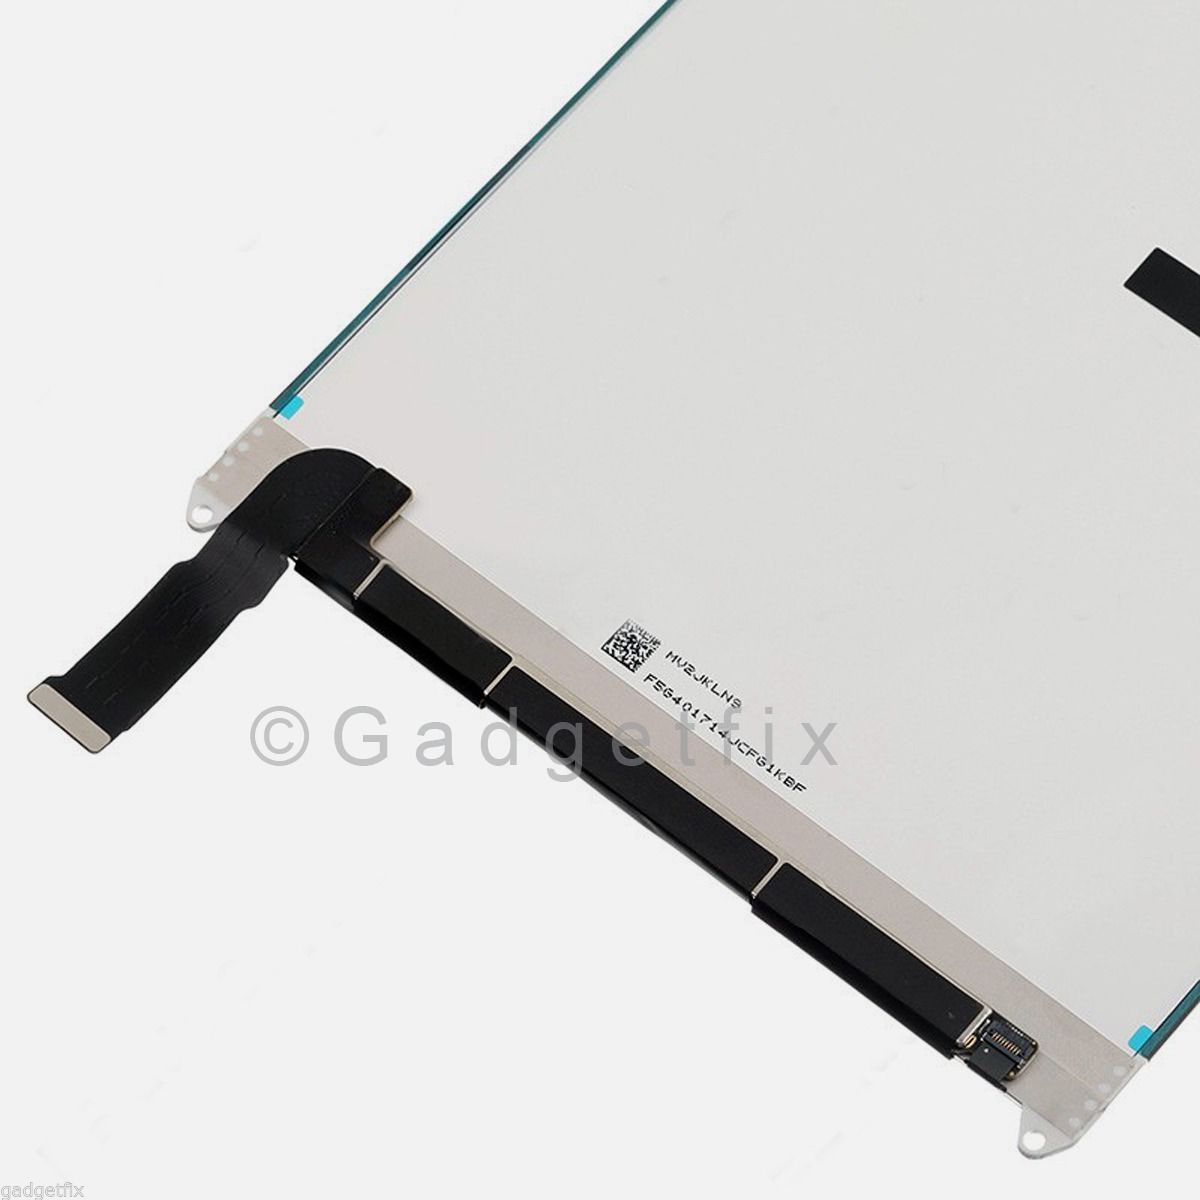 LCD Screen Display Part for iPad mini 2 3 2nd 3rd Gen Generation with Retina